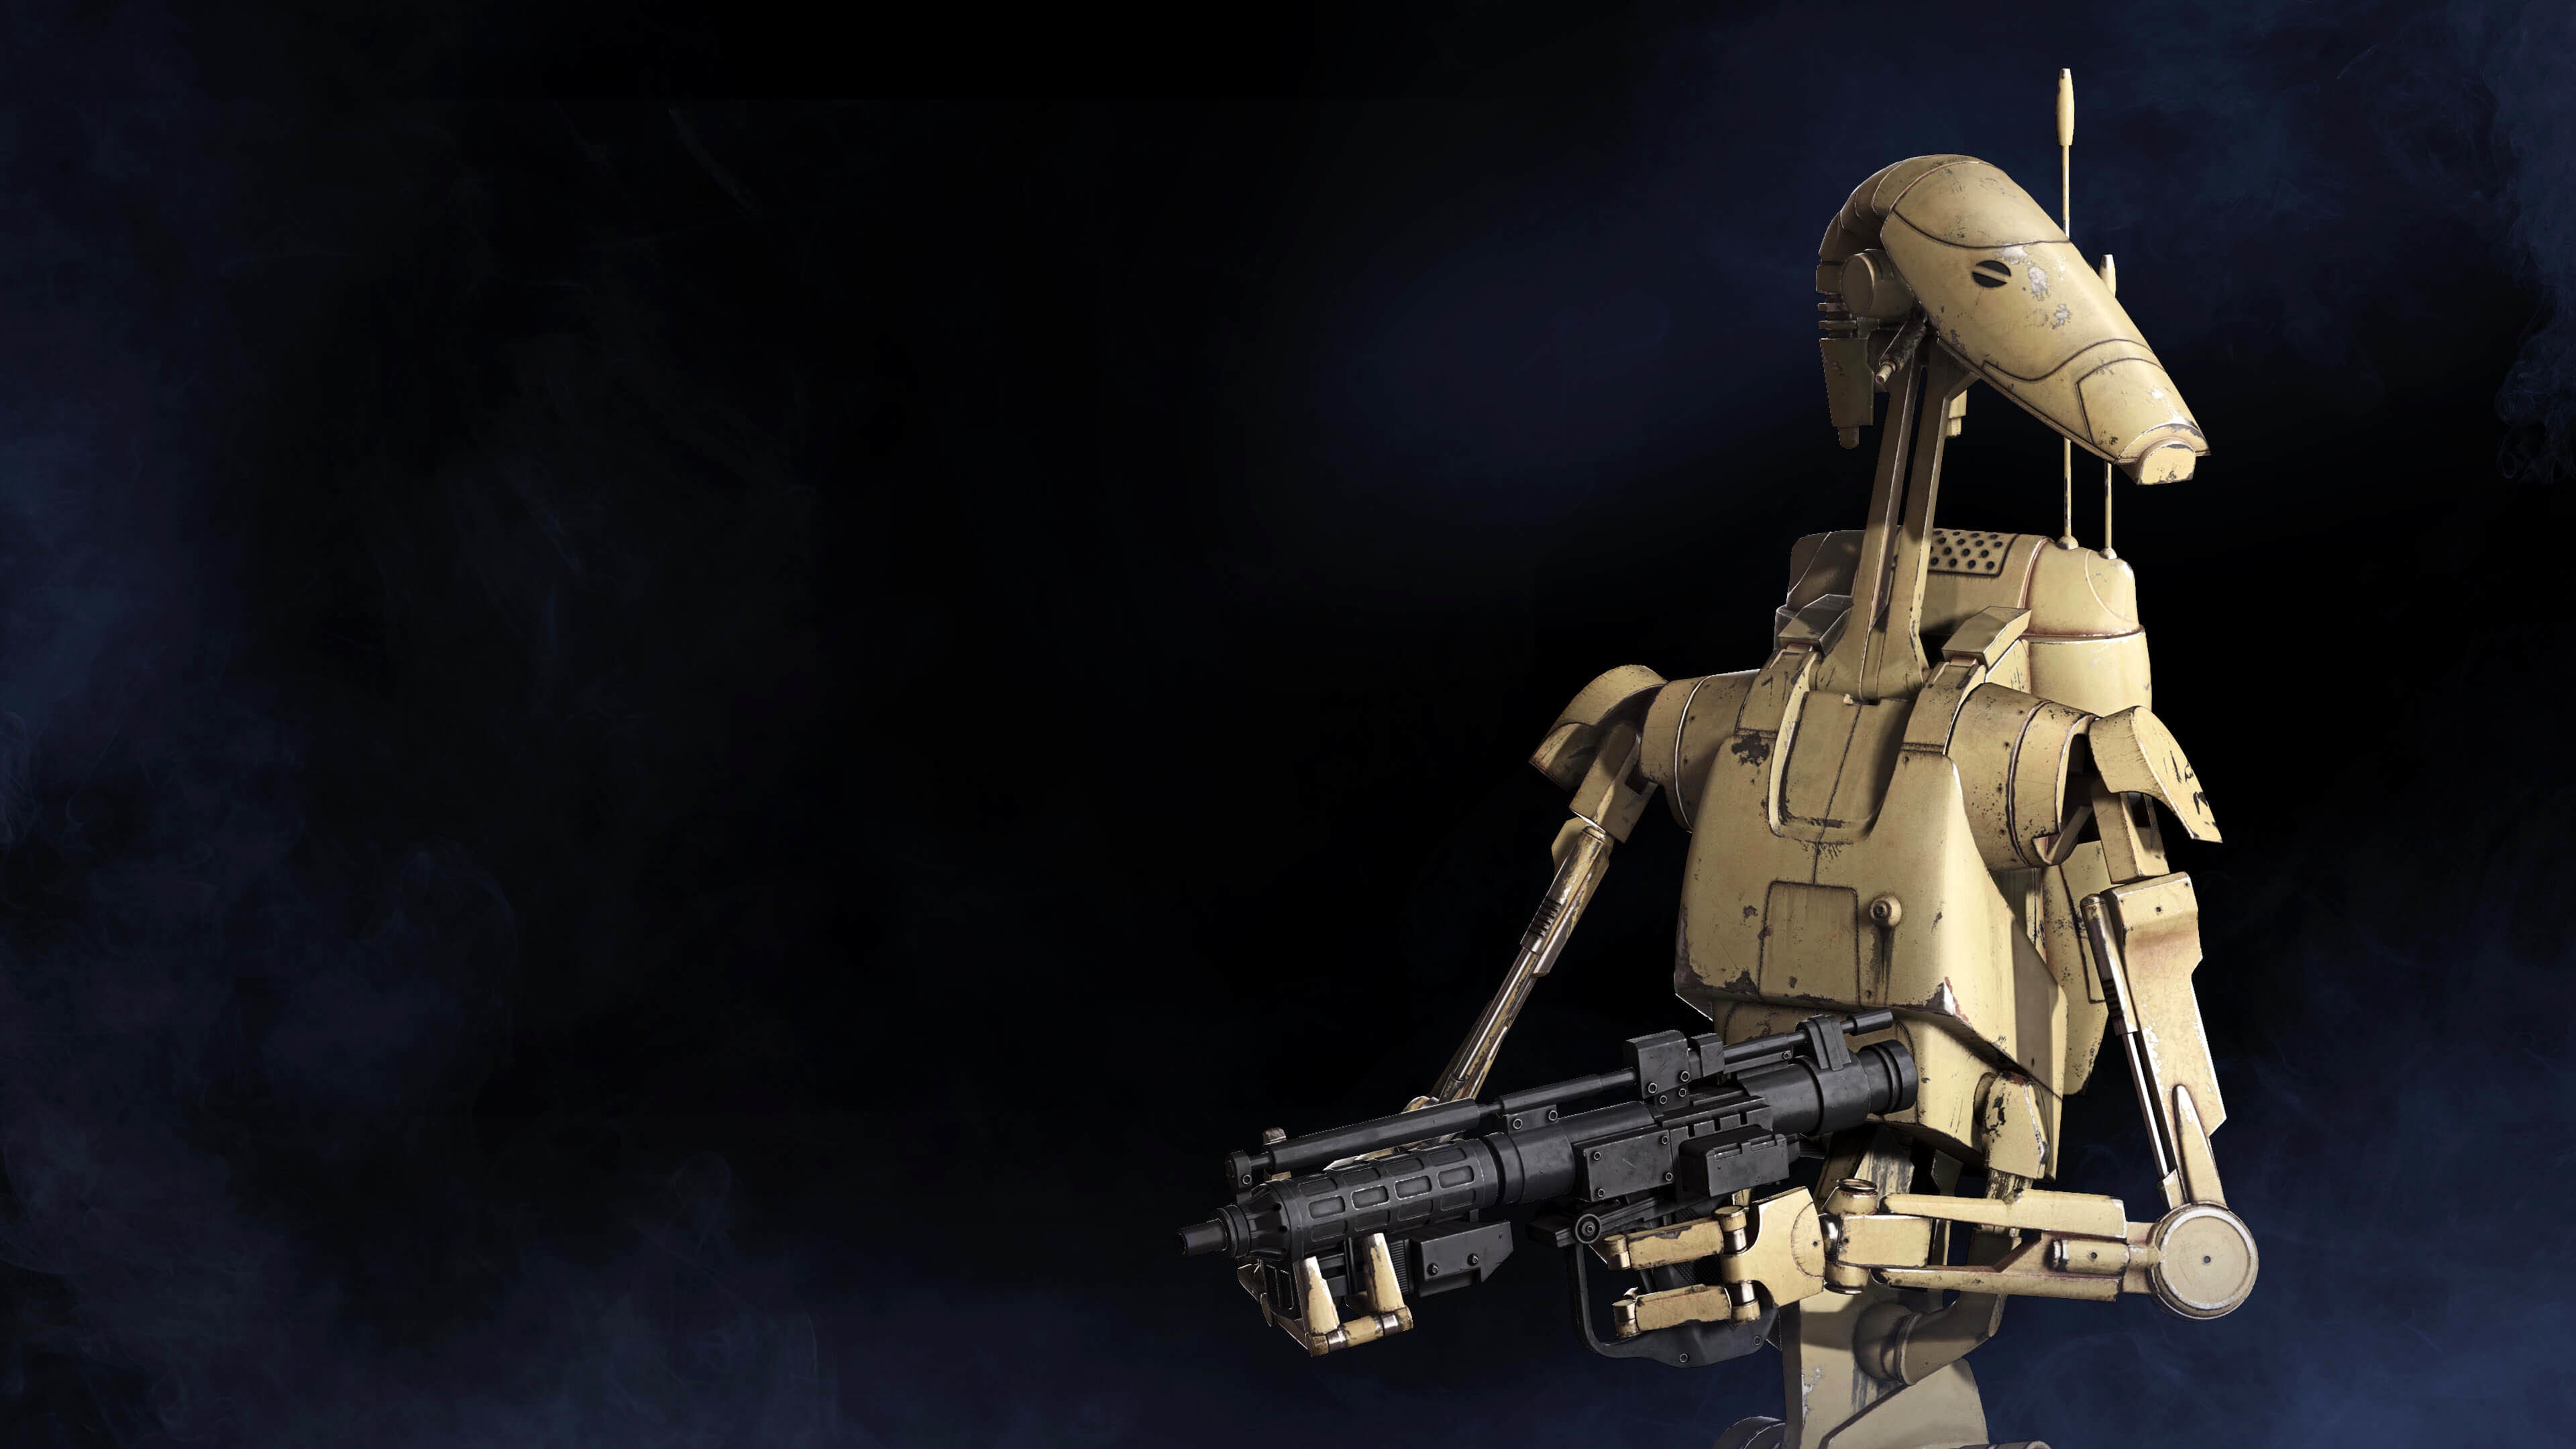 3840x2160 Star Wars: Battlefront II Battle droid  wallpaper